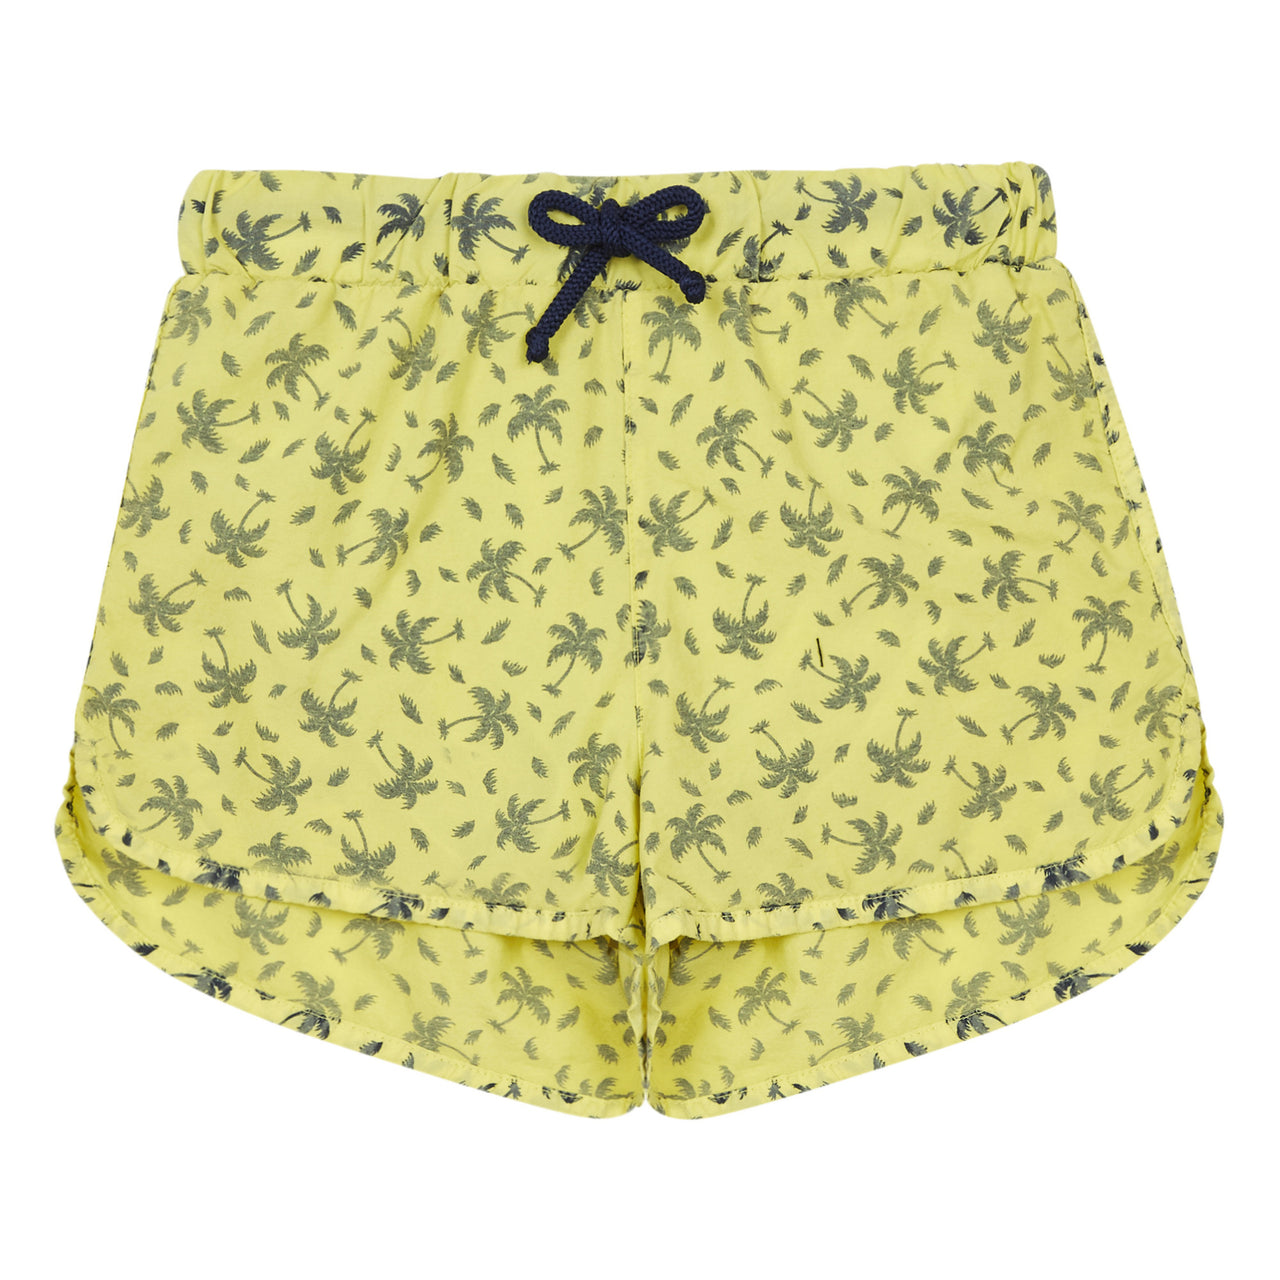 Bahia Palm Tree Swimming Shorts Lemon